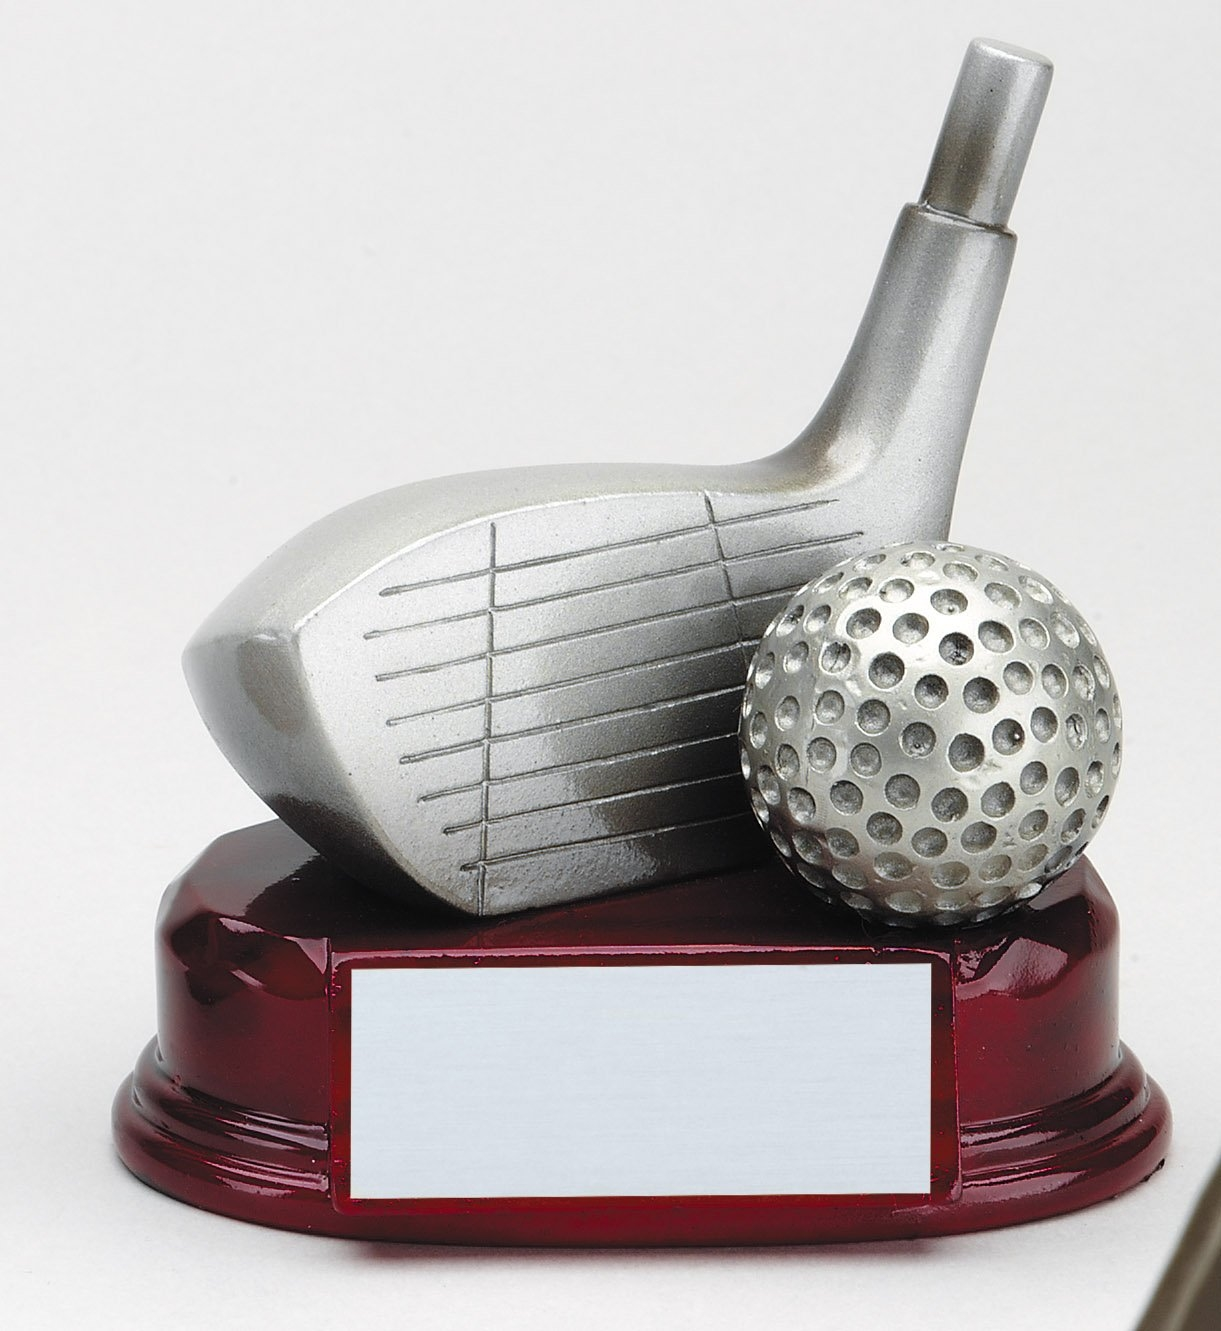 Longest Drive Golf Trophy Award